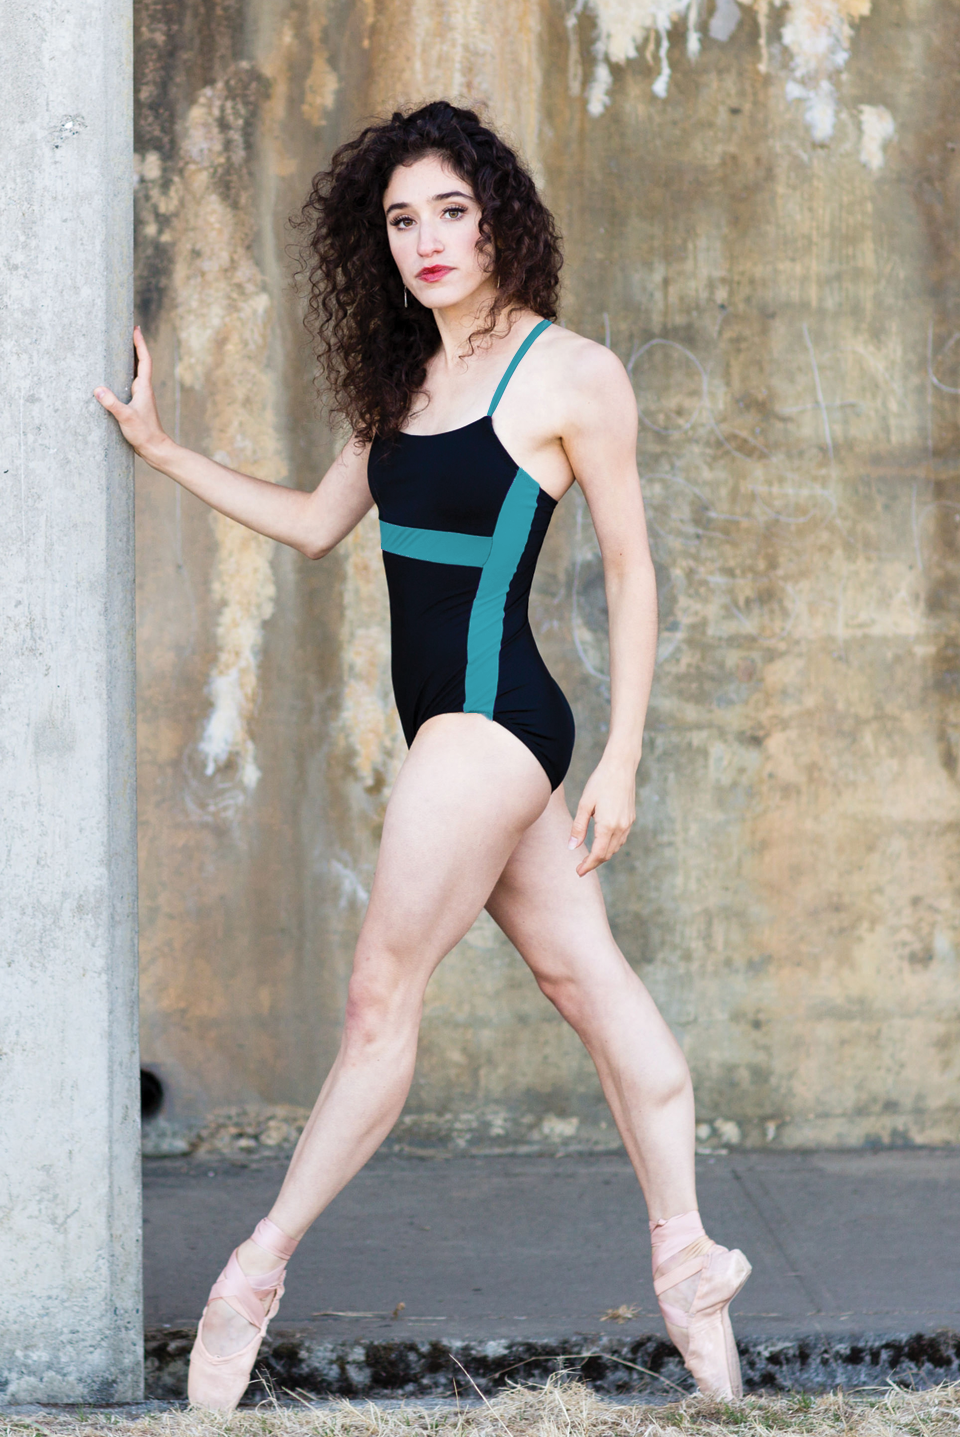 dancer on pointe wearing black leotard with green blocks and small straps